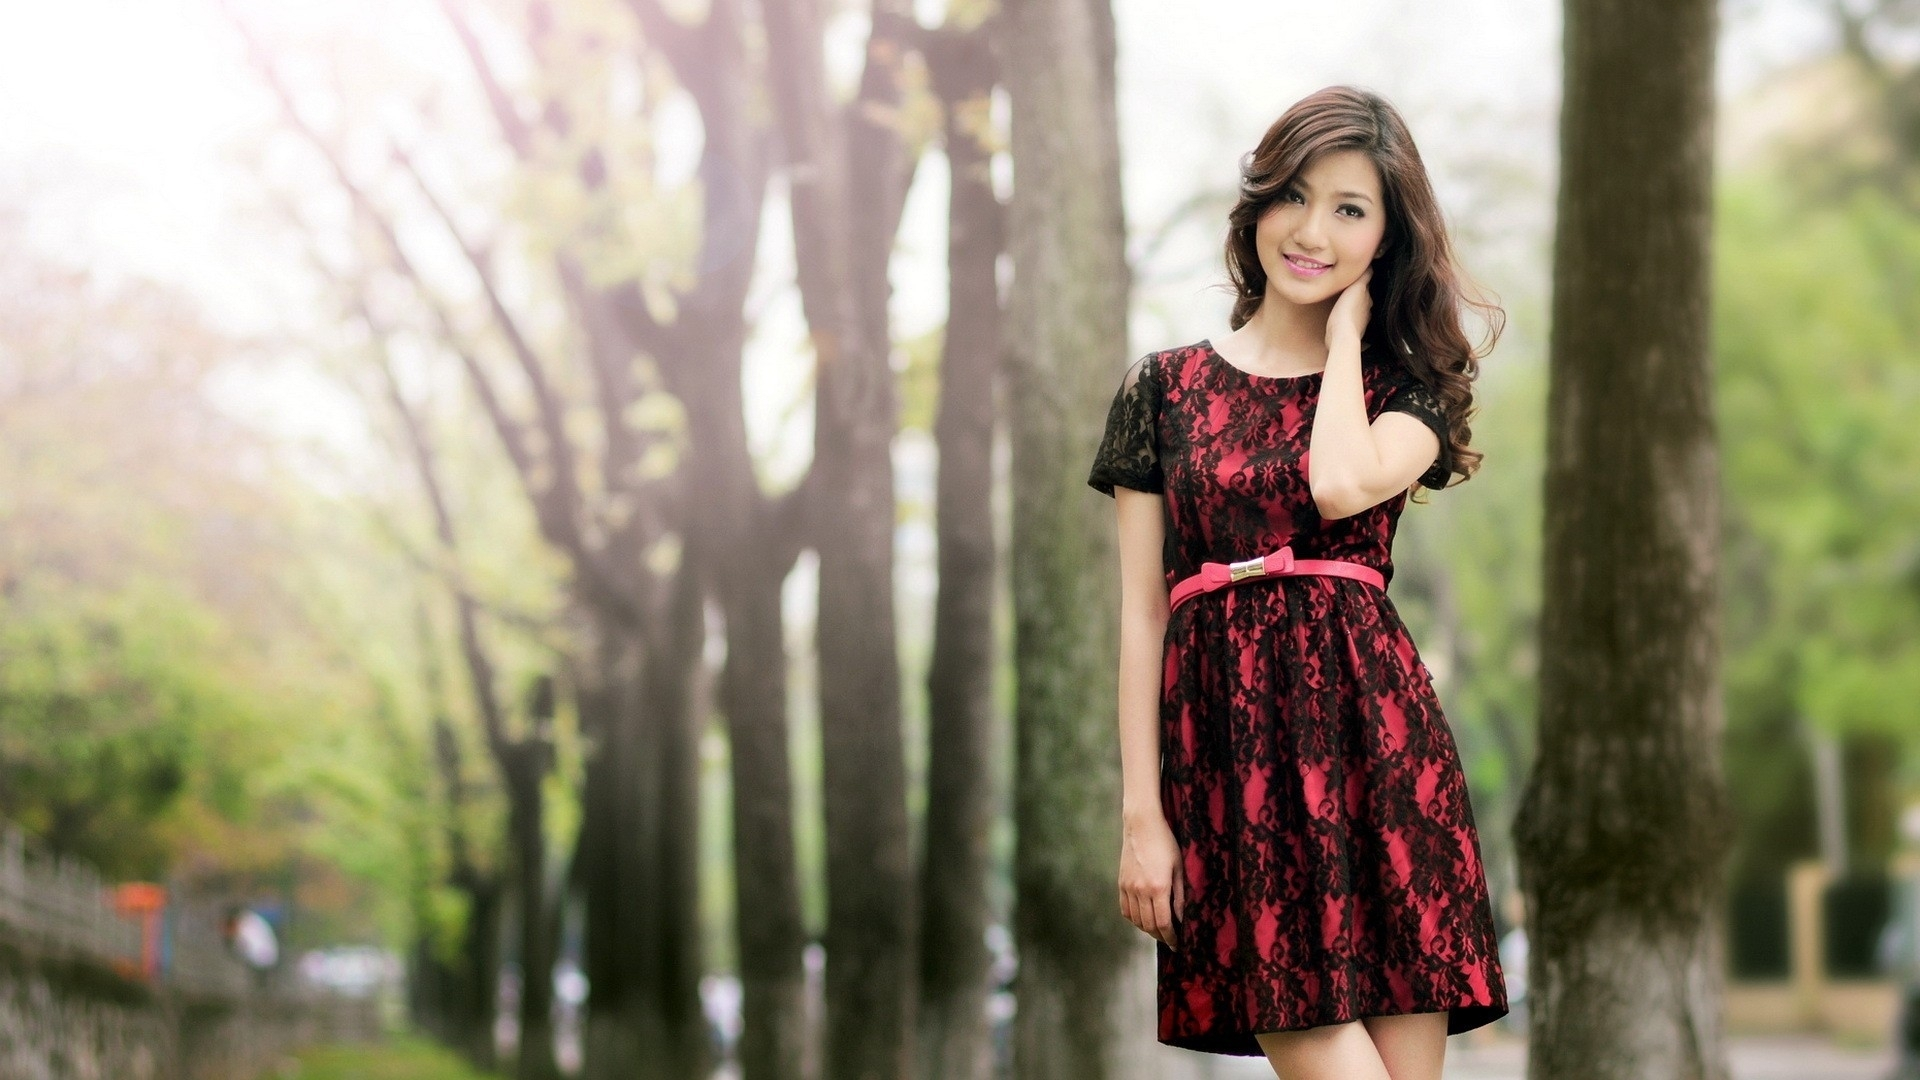 cute-girl-wallpapers-hd-download-free-for-laptop-02